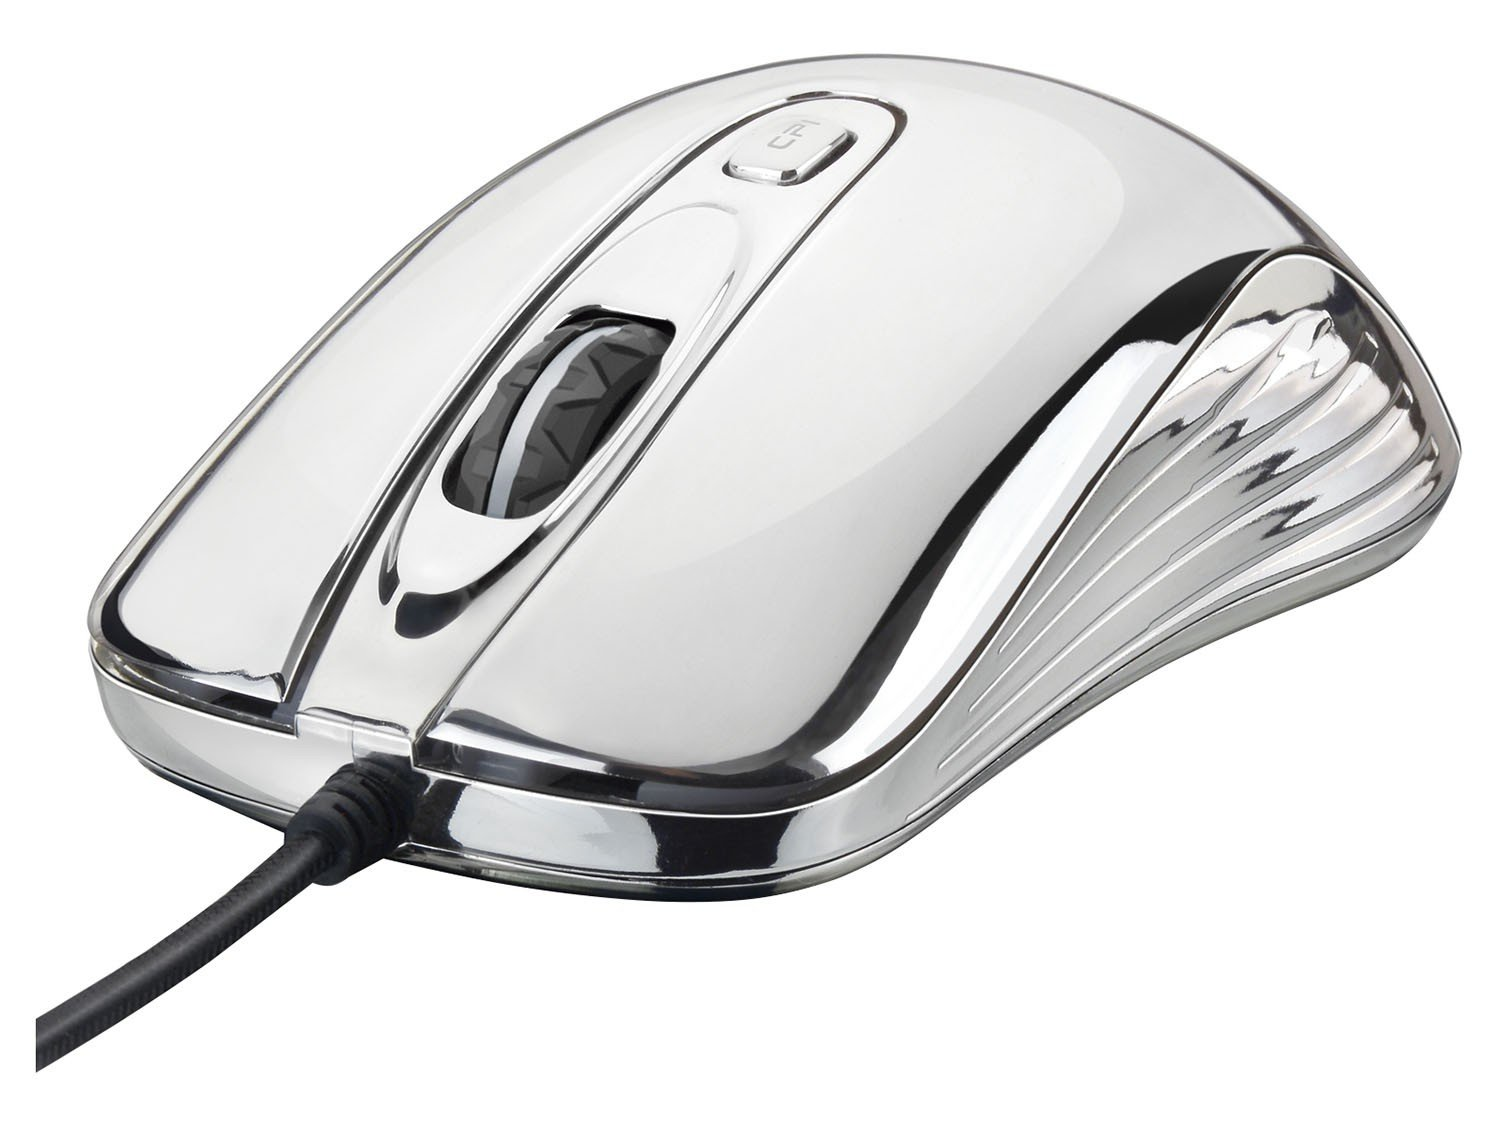 Foto 1 - Mouse Óptico 1600dpi USB - Multilaser Gamer Chrome Warrior M0228